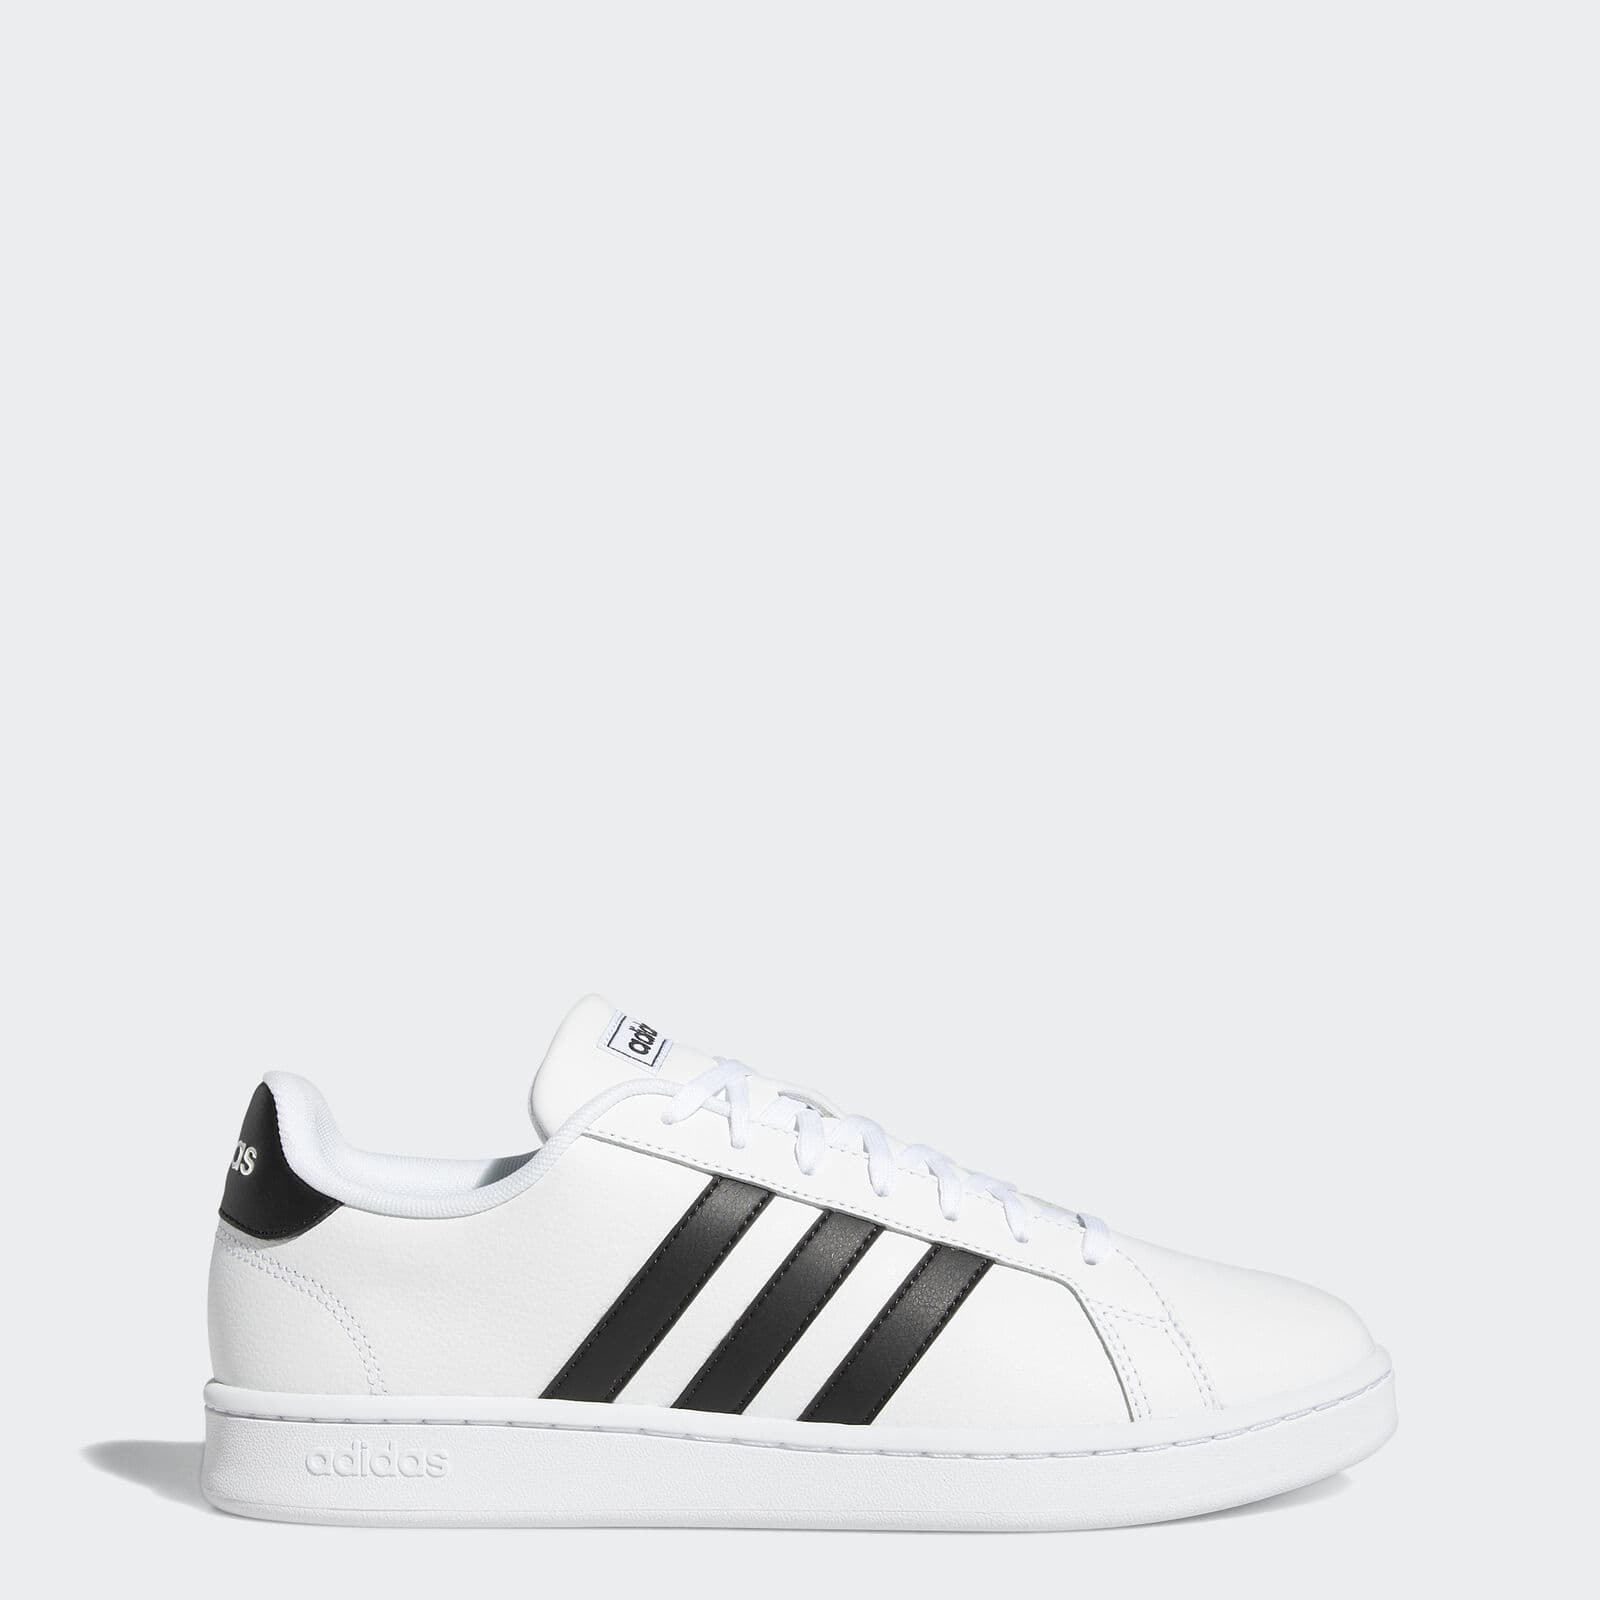 adidas Men's or Women's Grand Court or Grand Court Base Shoes